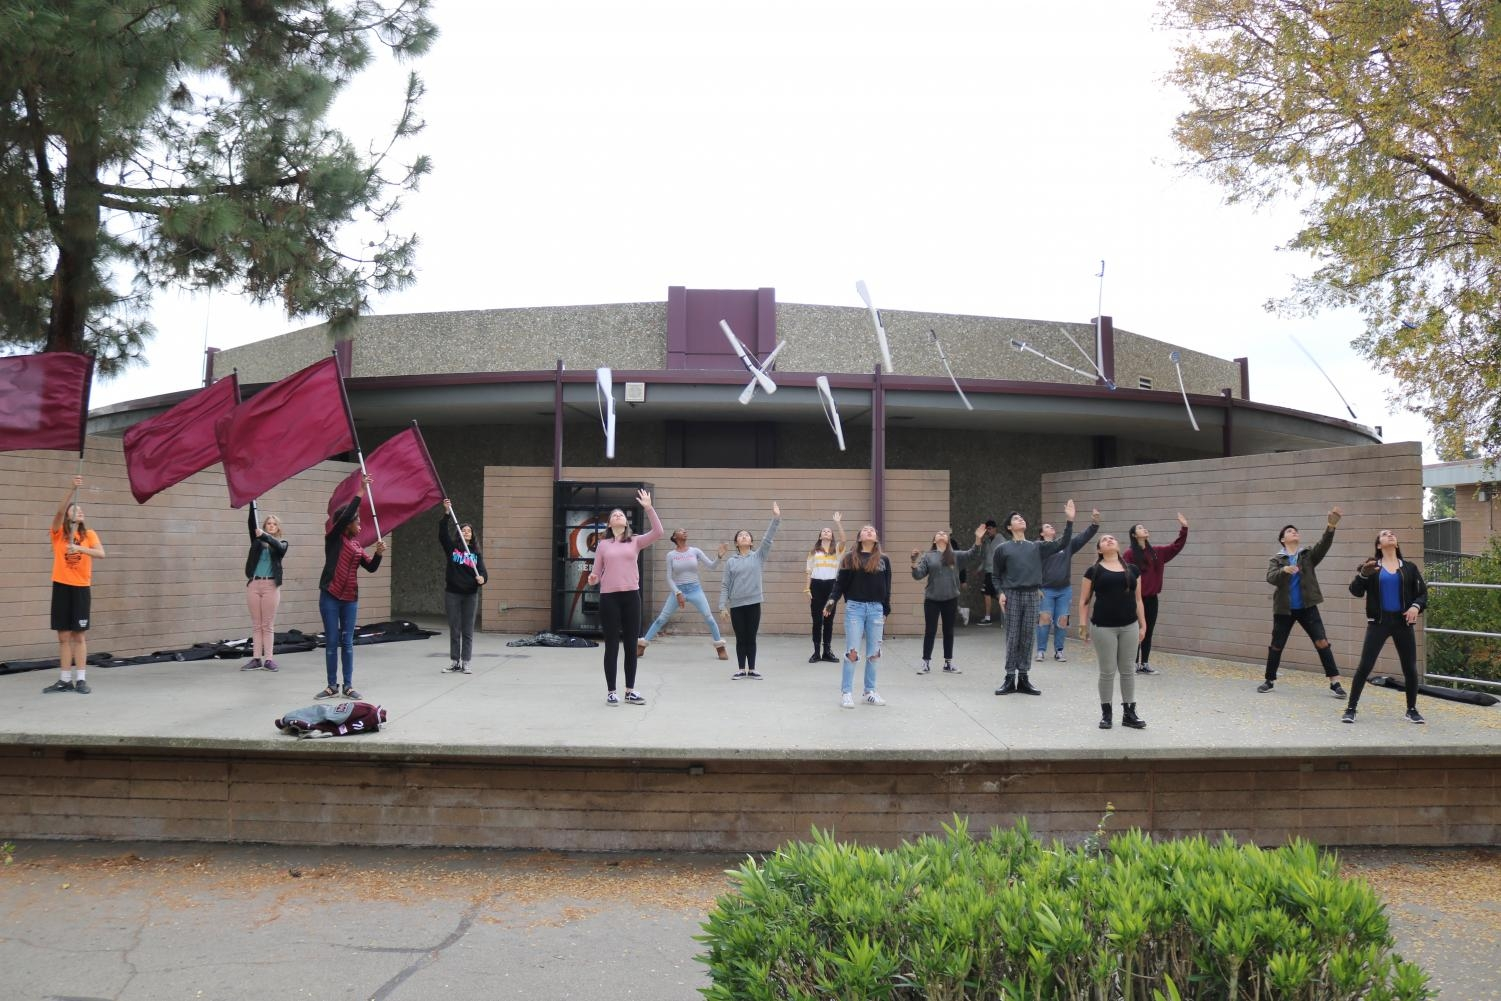 Students in the color guard practice on the band stage during the school period allocated to them for training. At other schools, sports teams get periods to train during the school day.